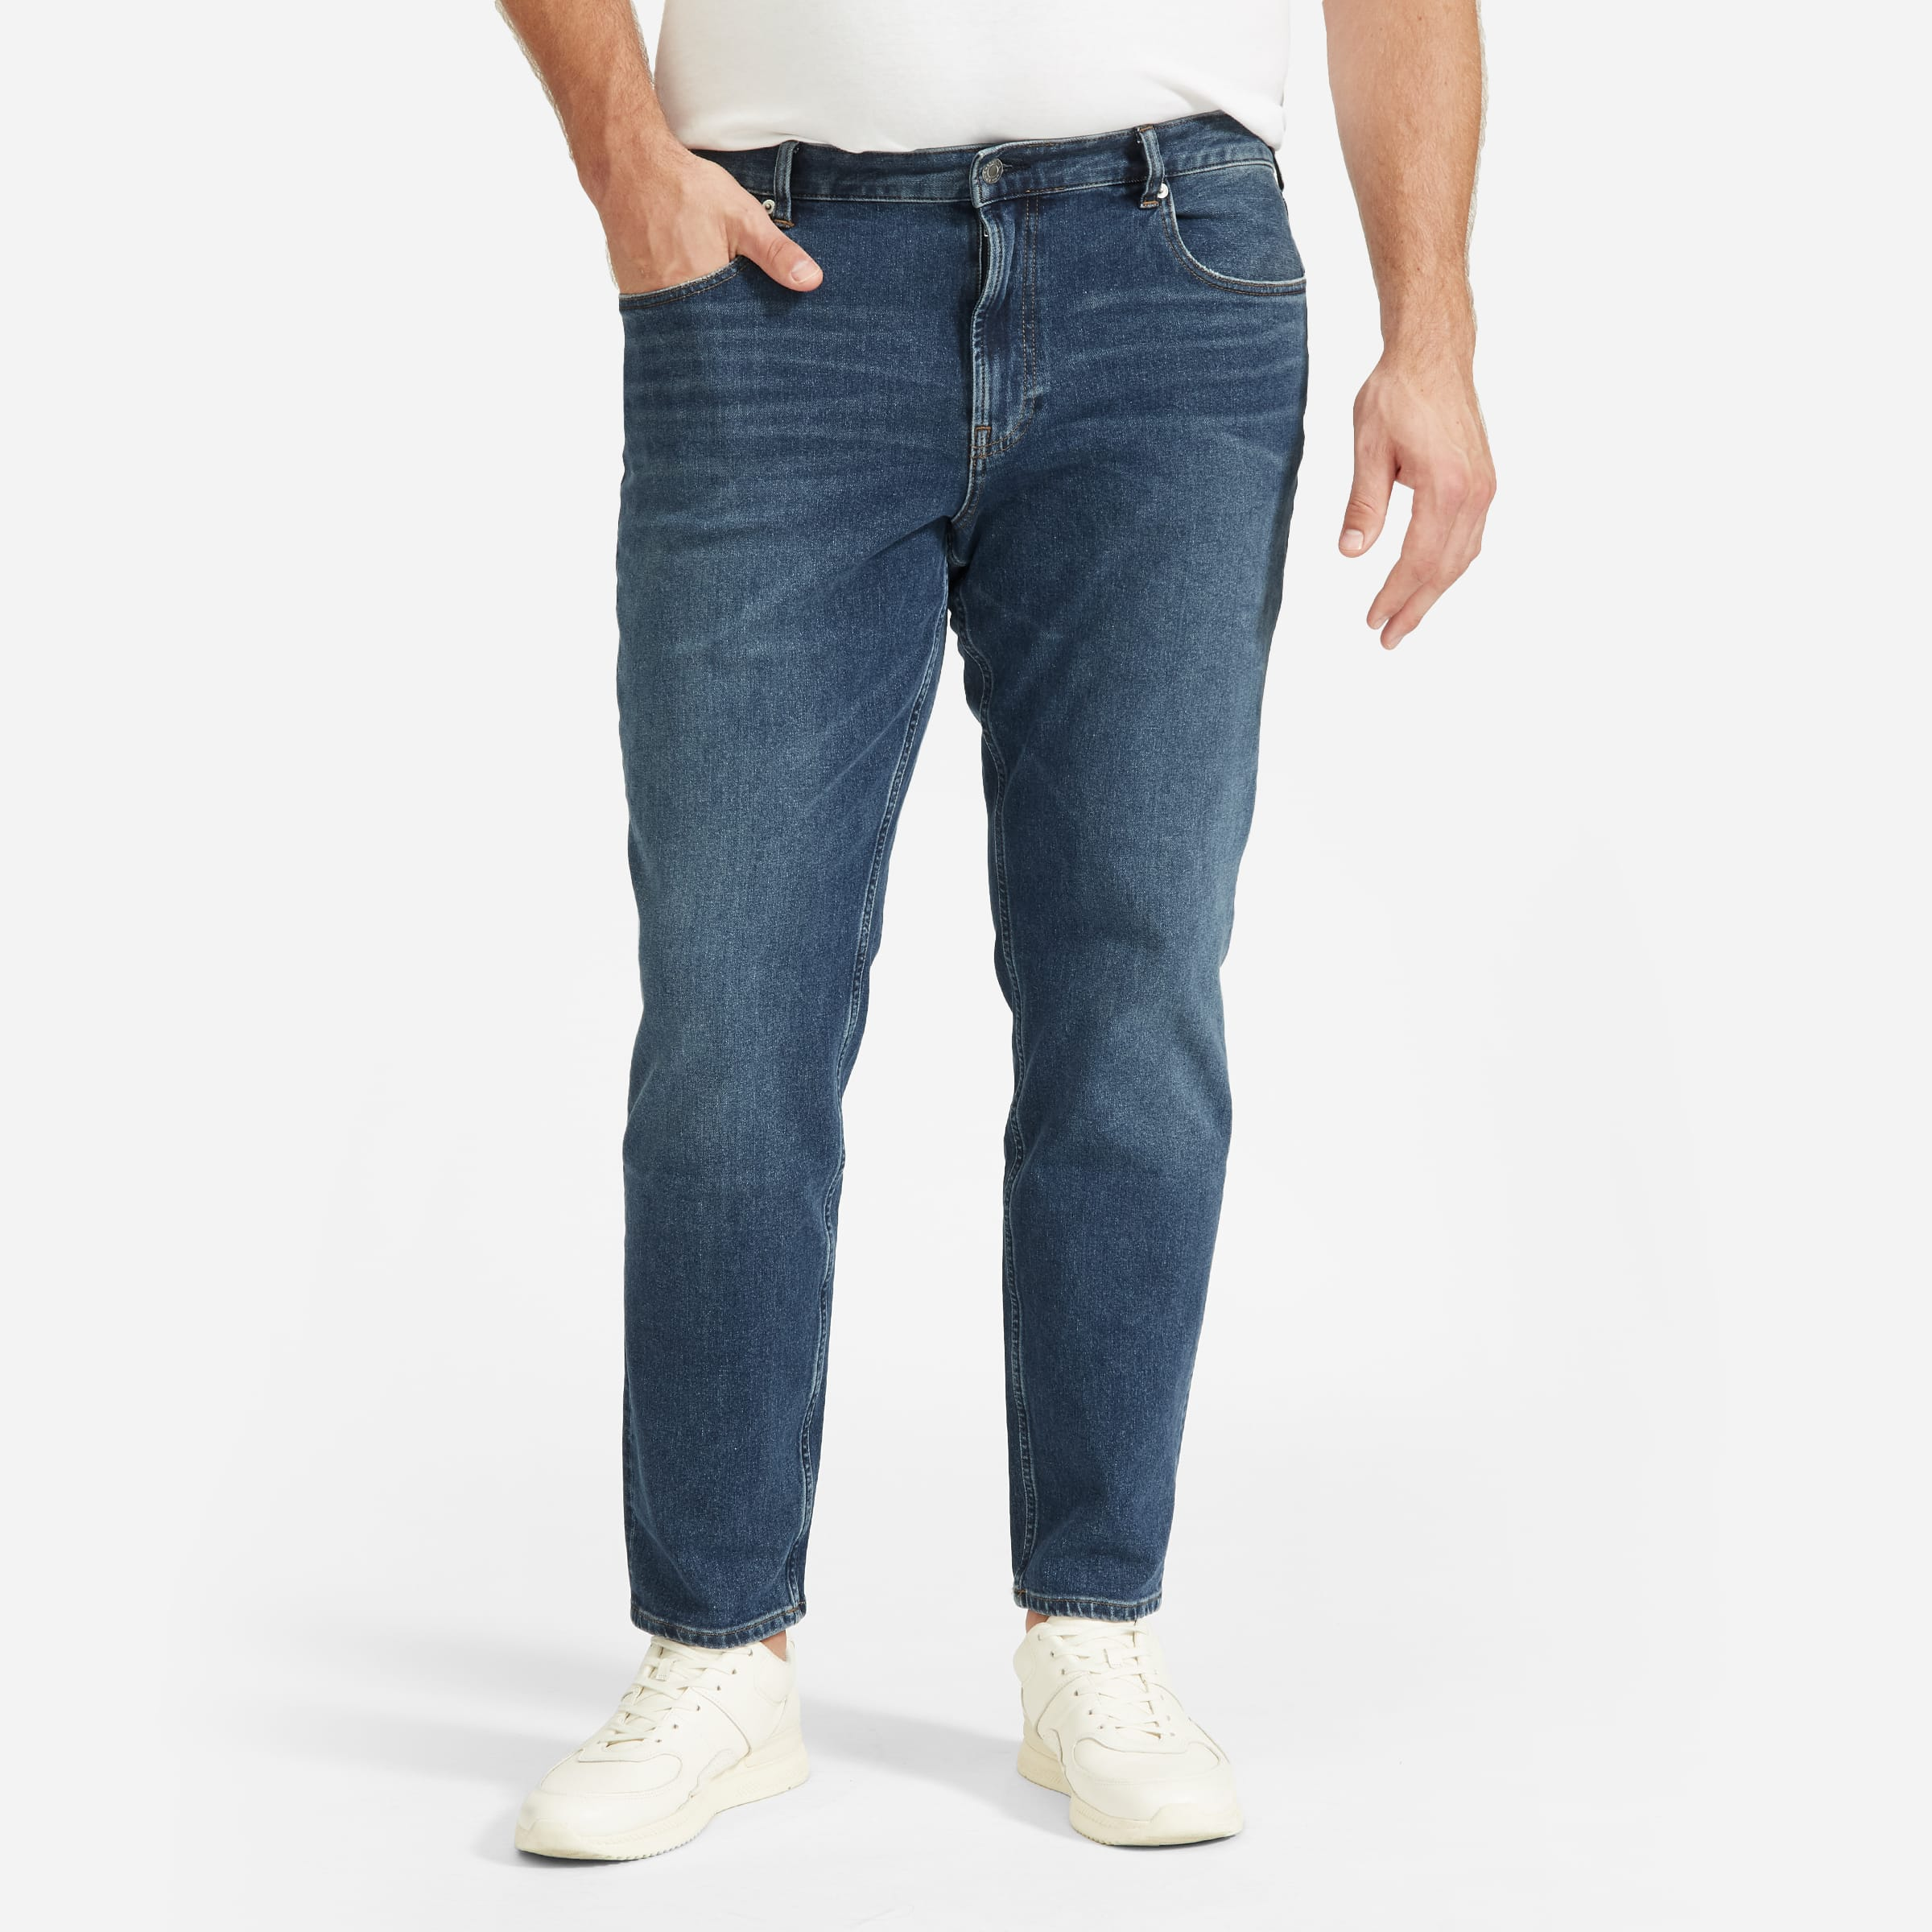 Everlane athletic fit jeans